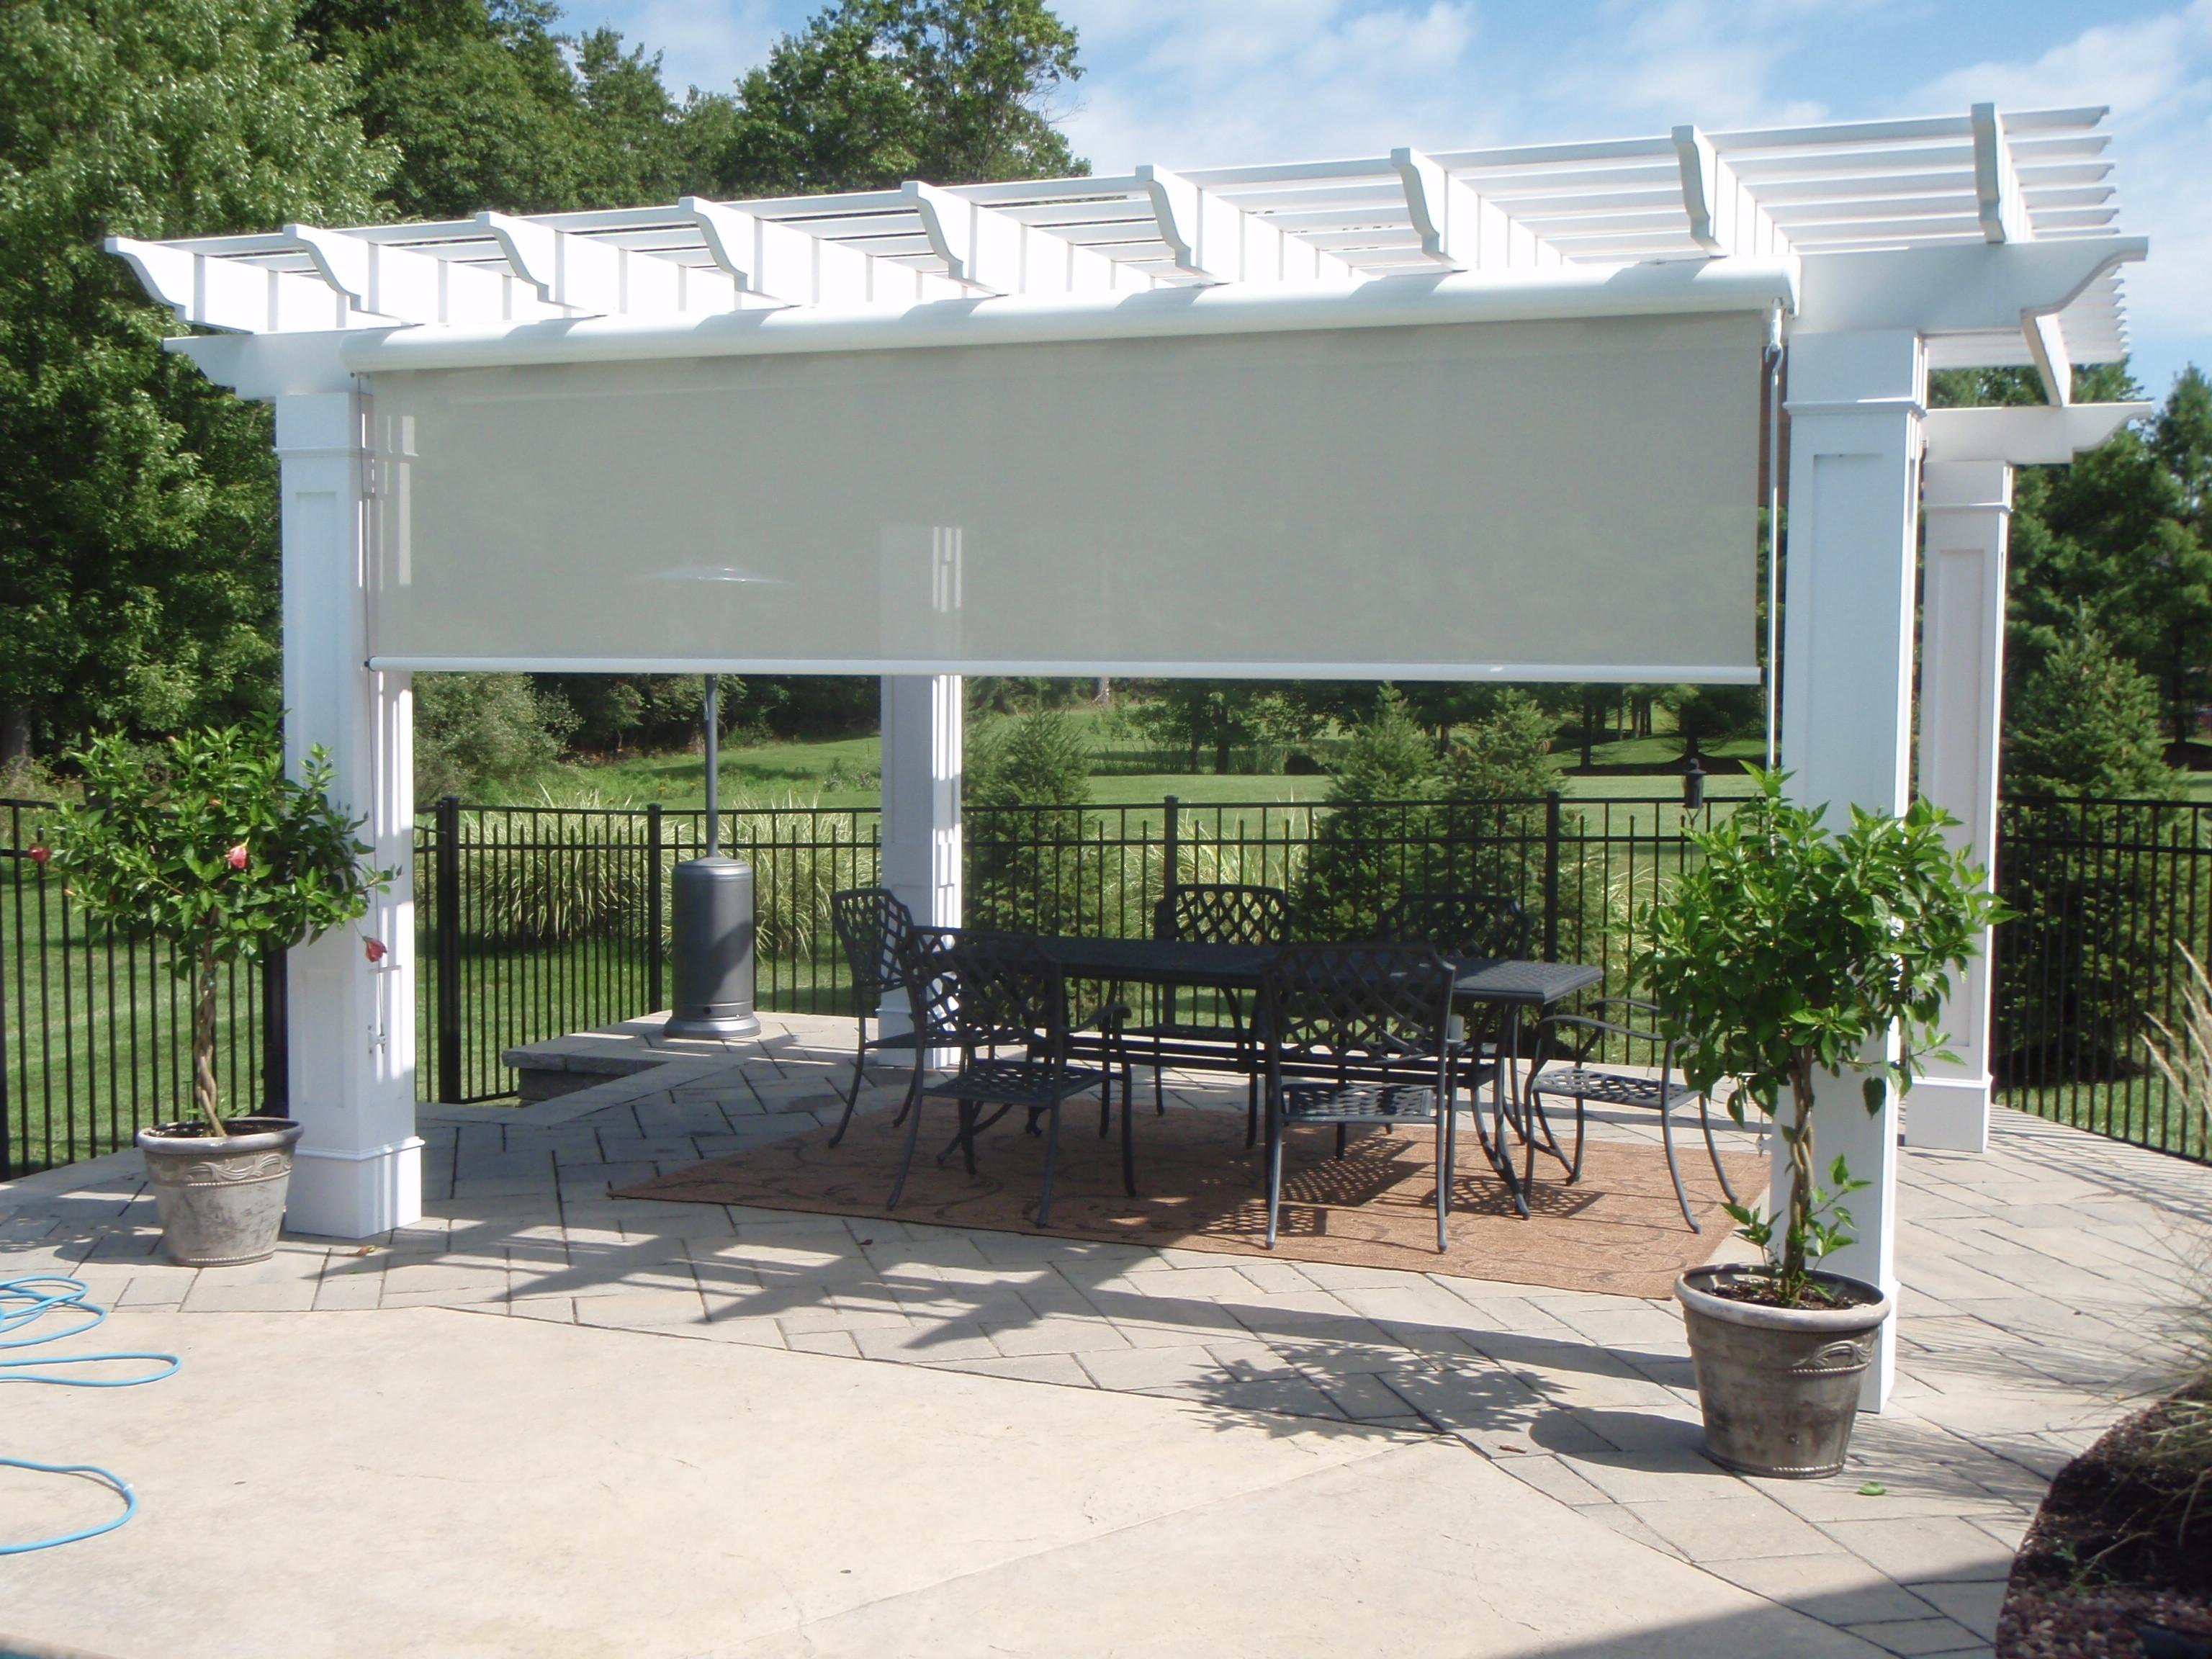 Backyard Awnings Miami :  want in your pergola space with awnings, canopies and pergola covers